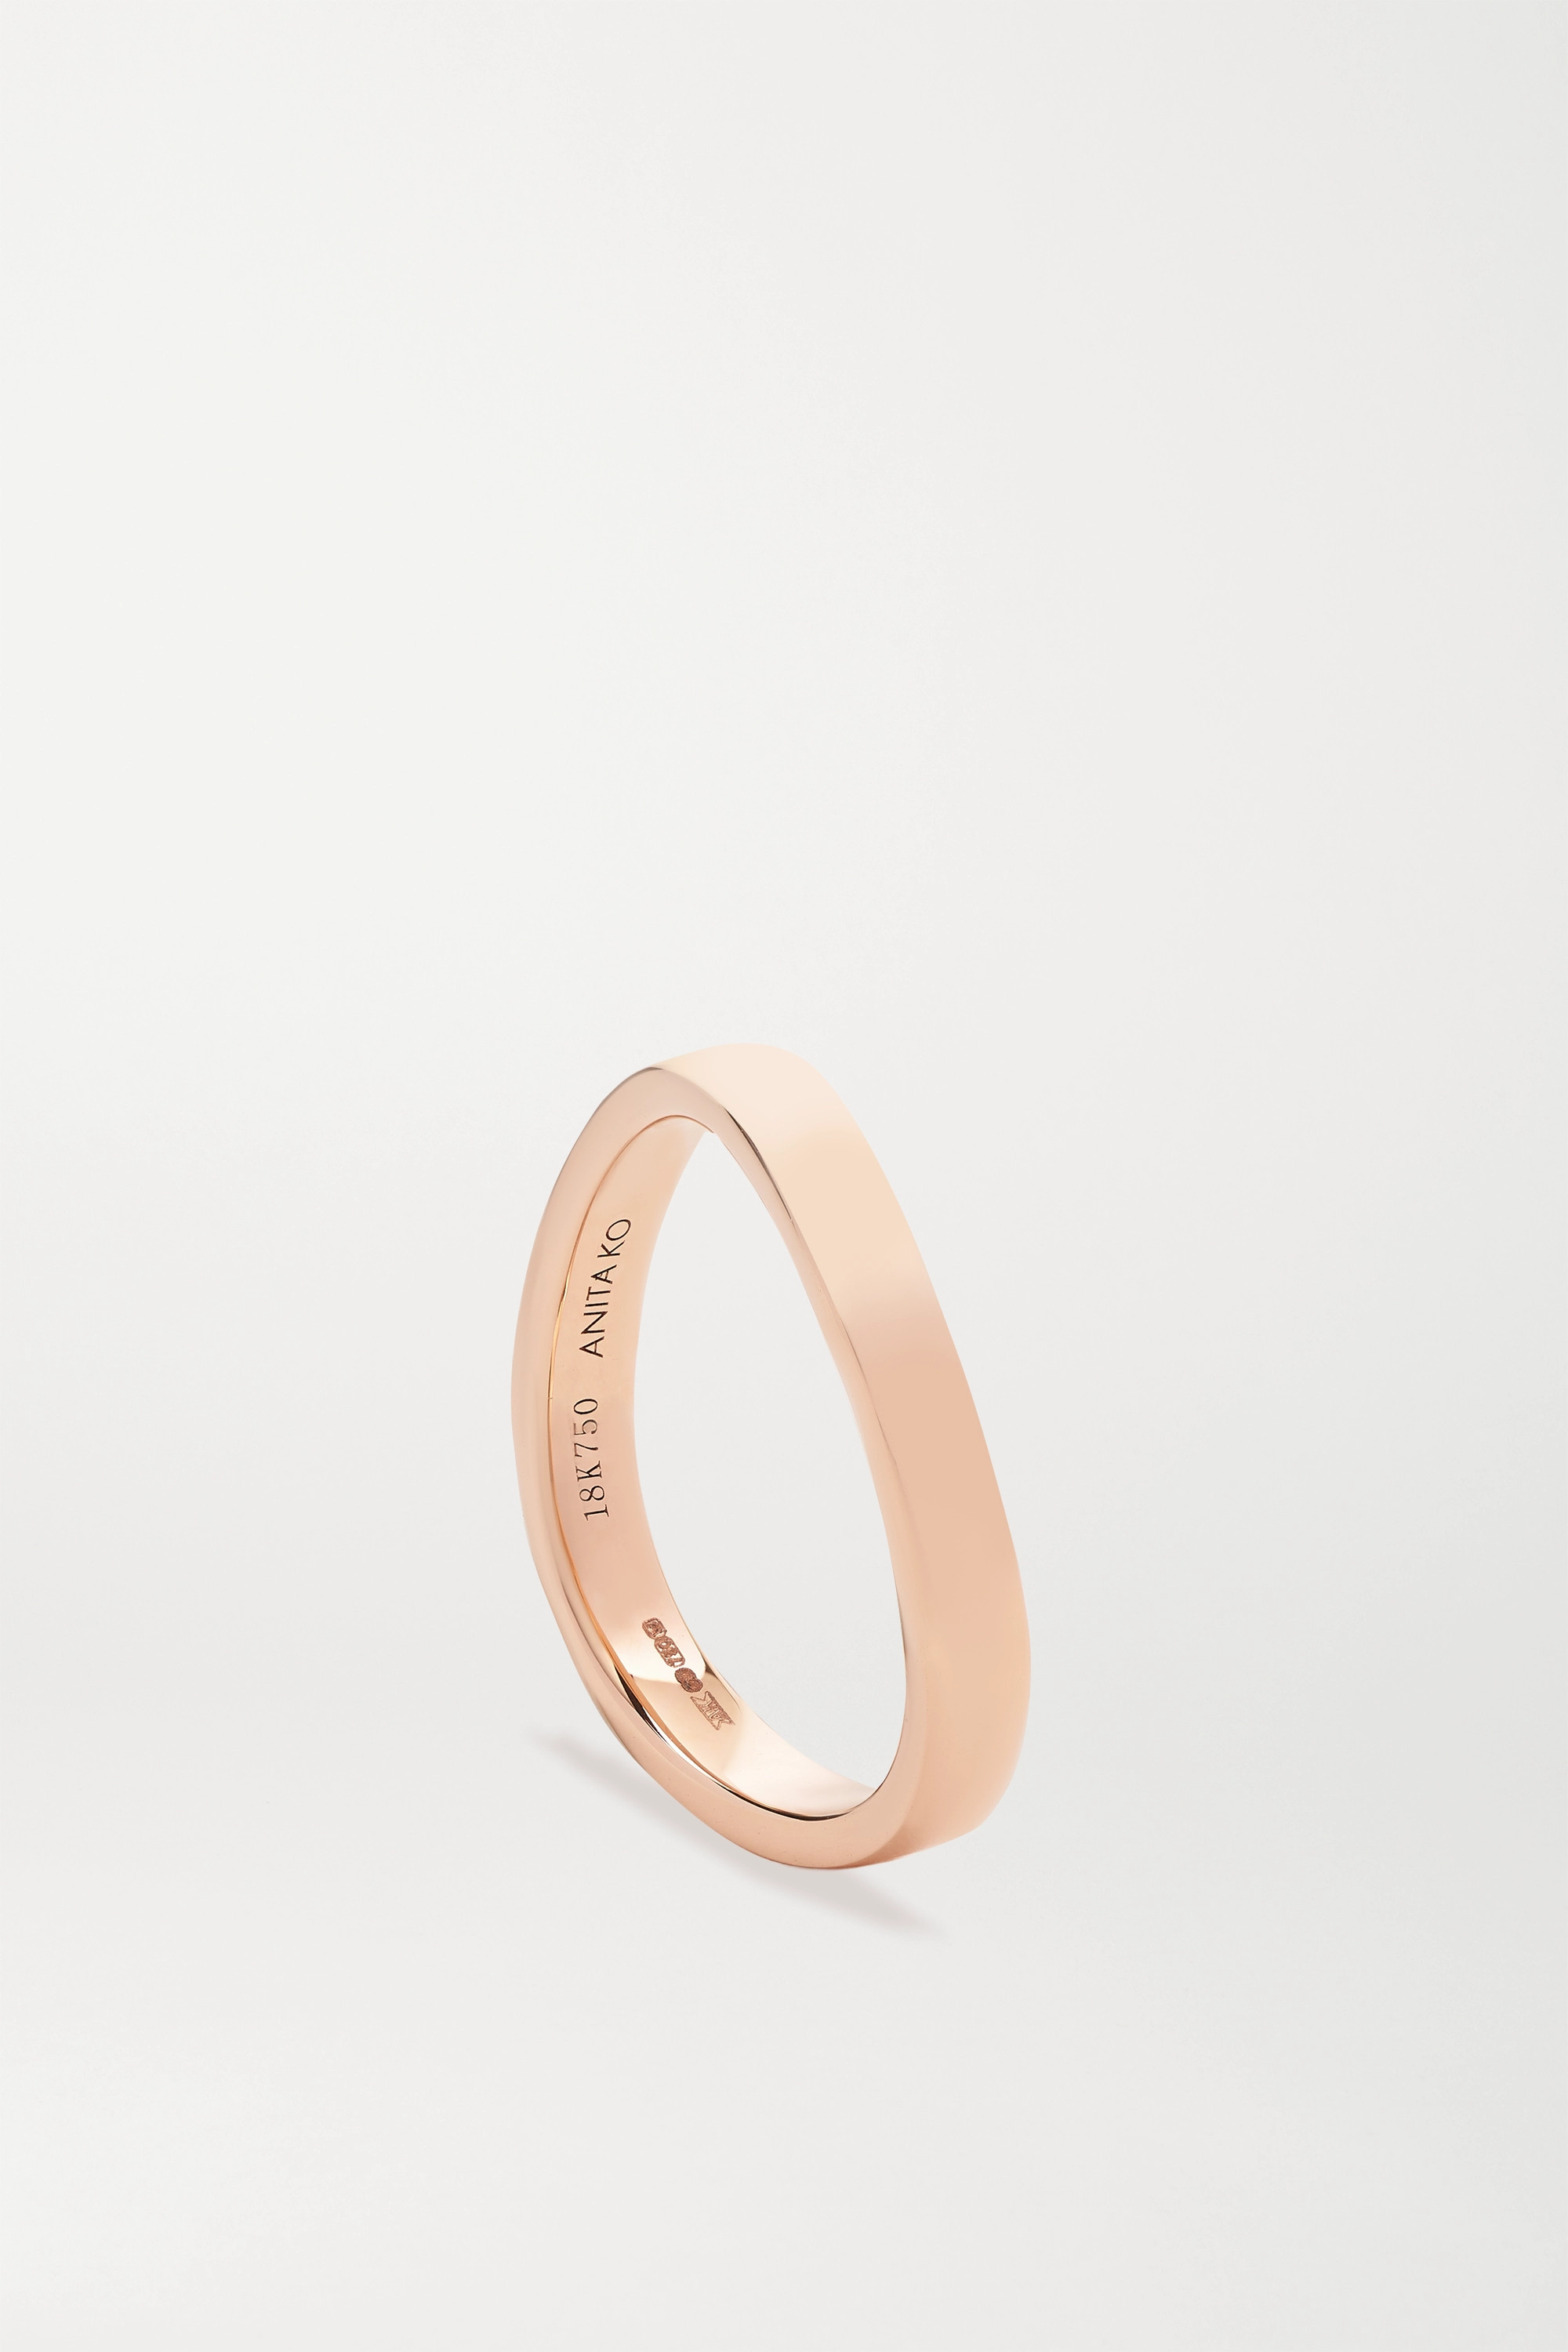 ANITA KO Curved 18-karat rose gold ring